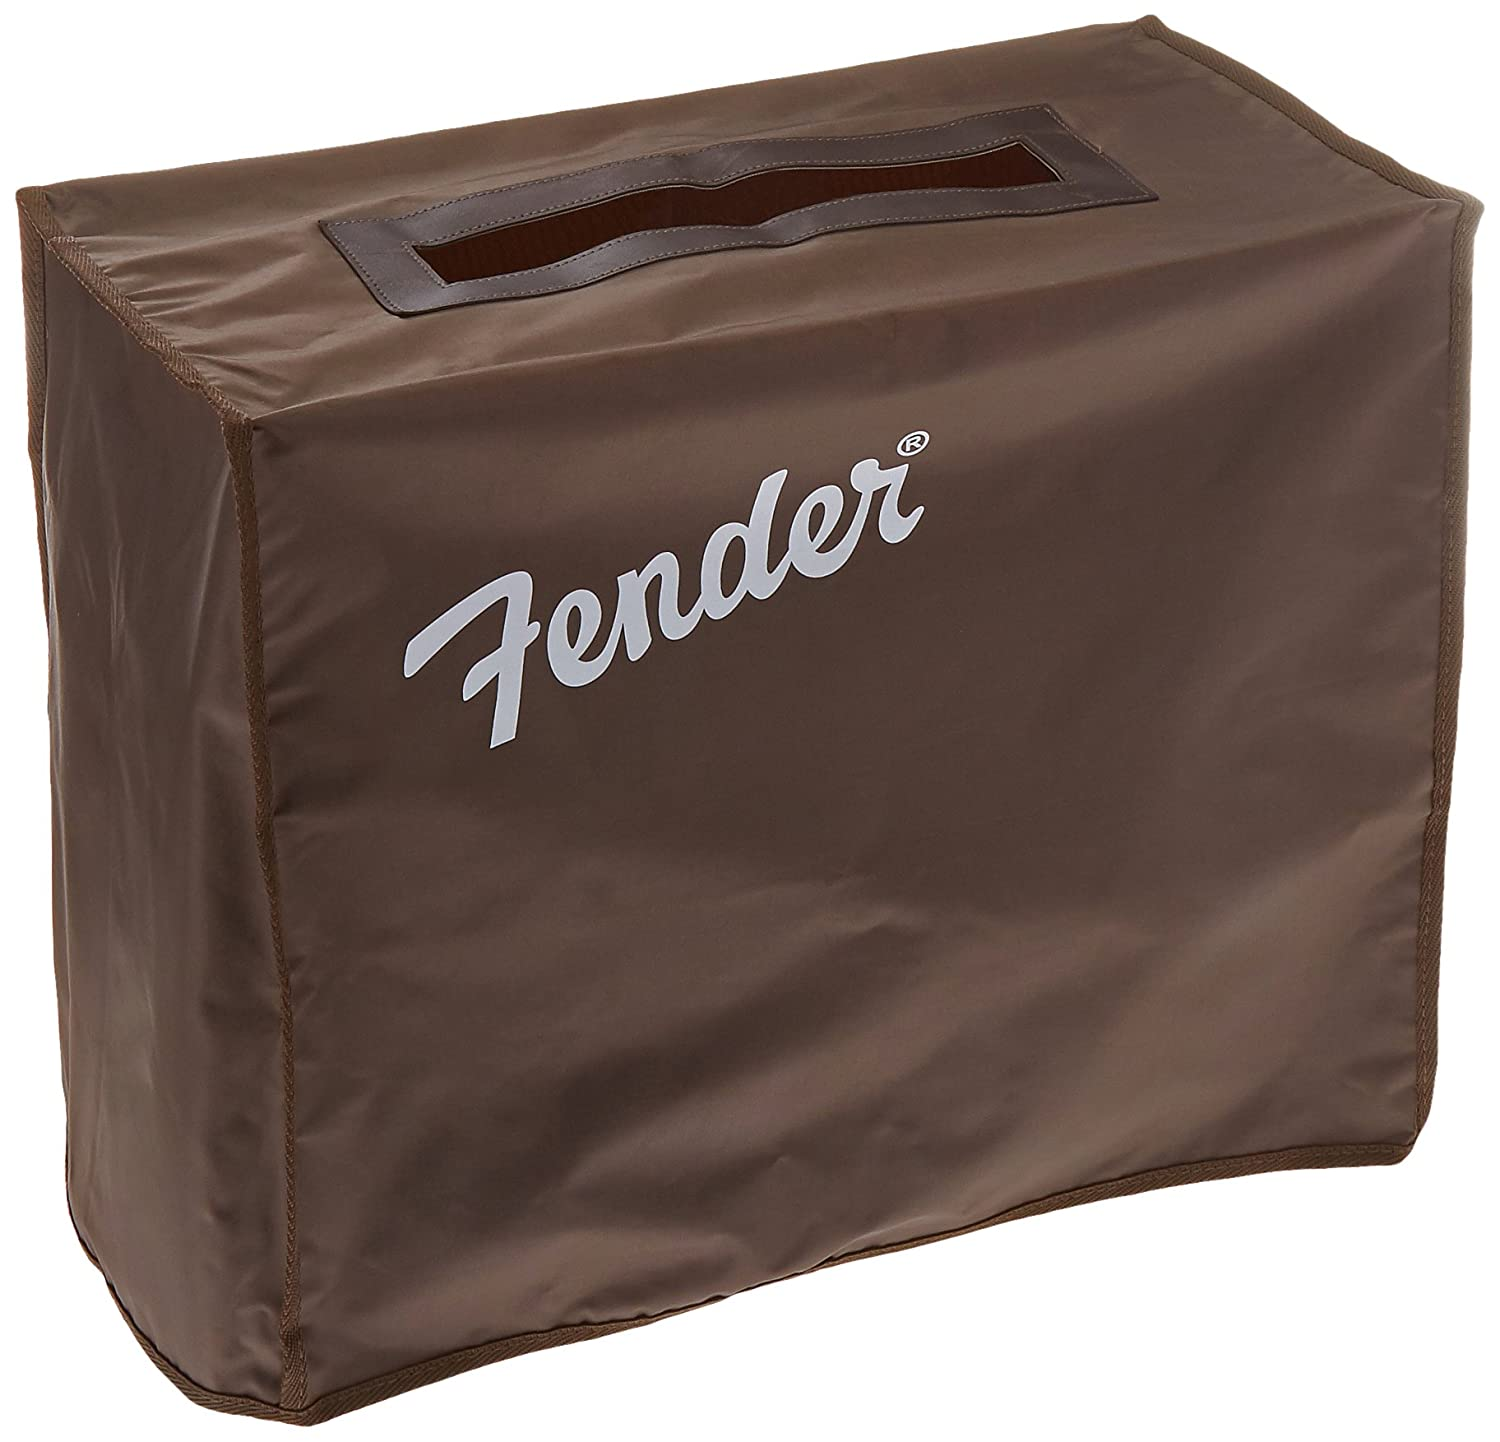 Fender 005 – 0279 – 000 Blues Junior Amplifier Cover, Brown 0050279000 F0050279000